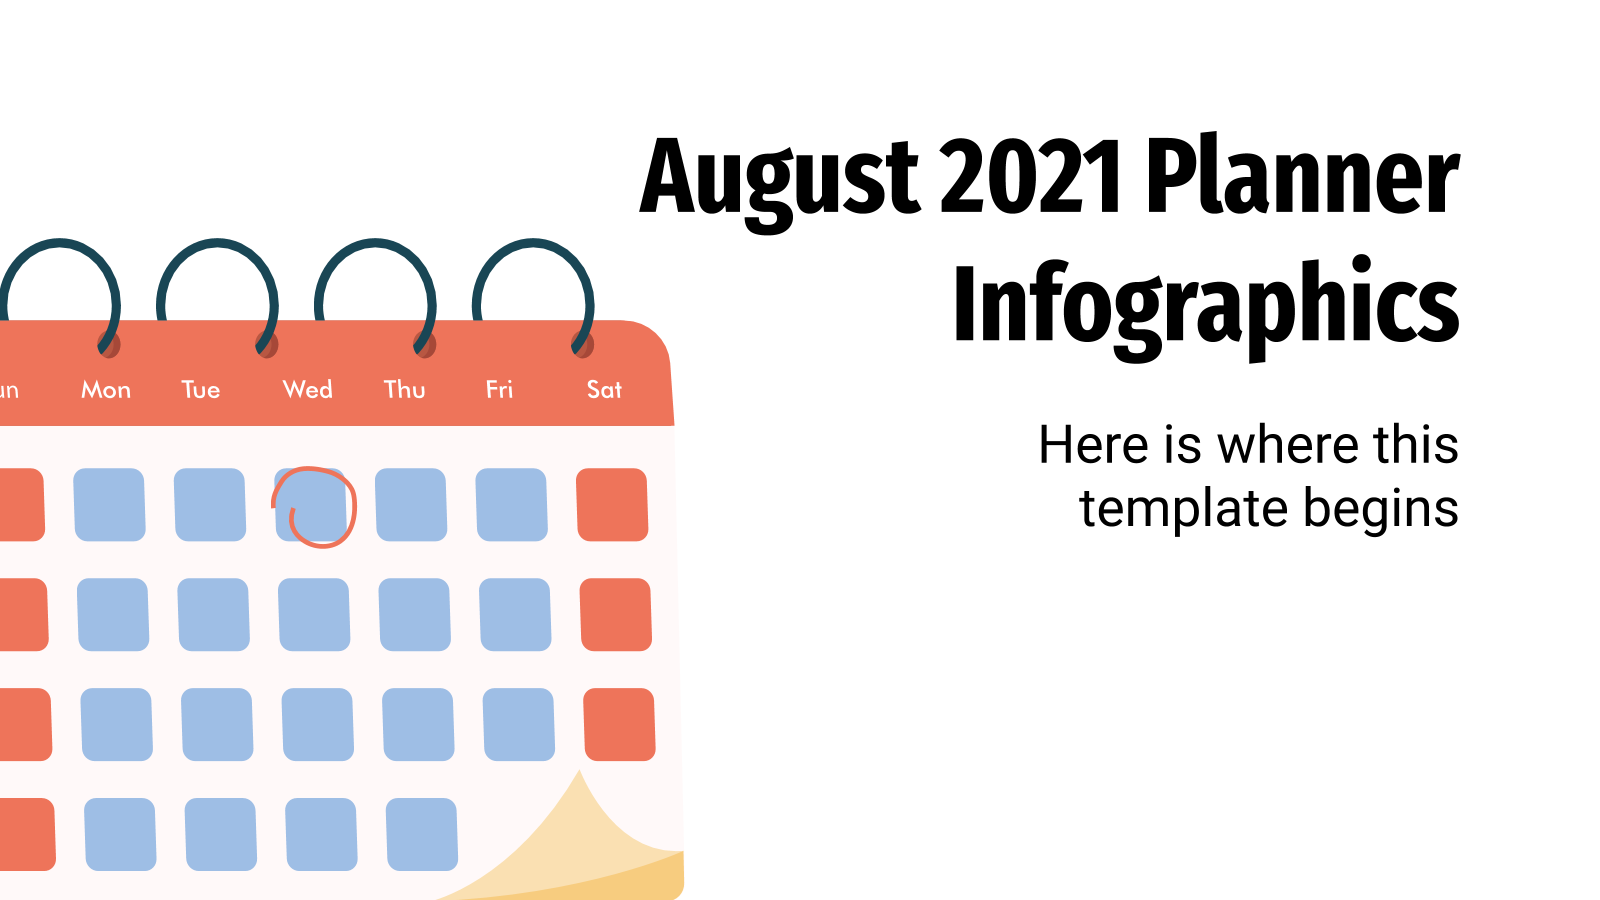 August 2021 Planner Infographics presentation template